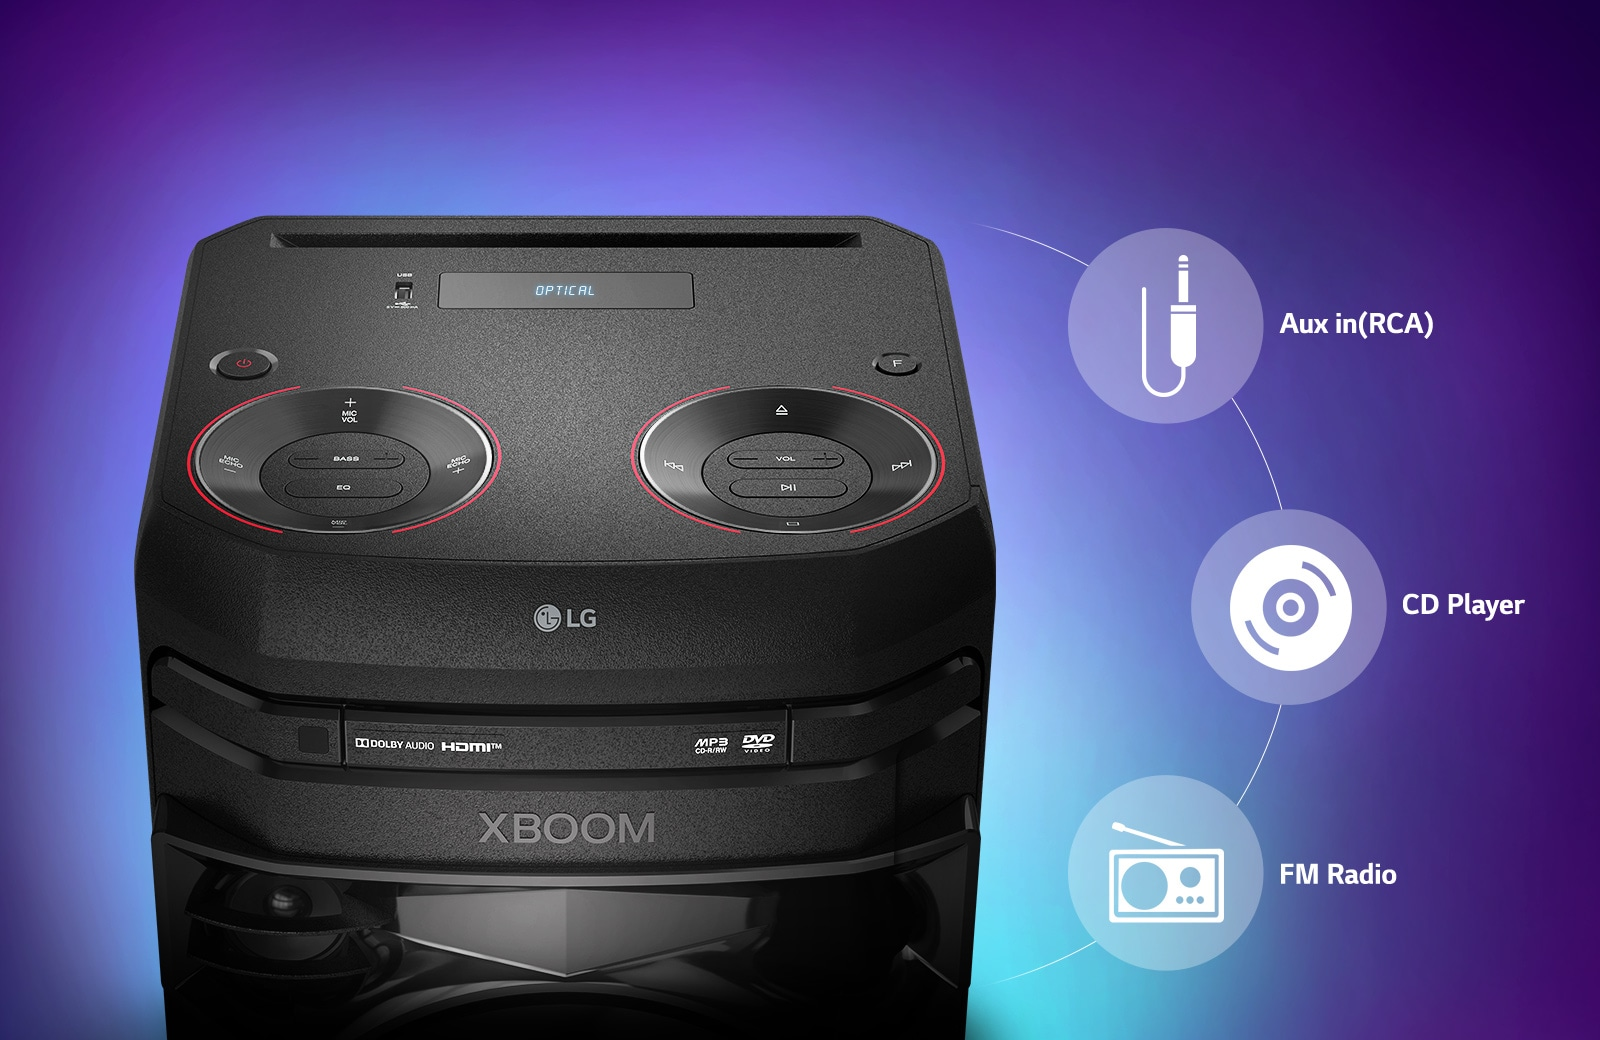 A close up of the top of LG XBOOM, connectivity icons are shown around the product.